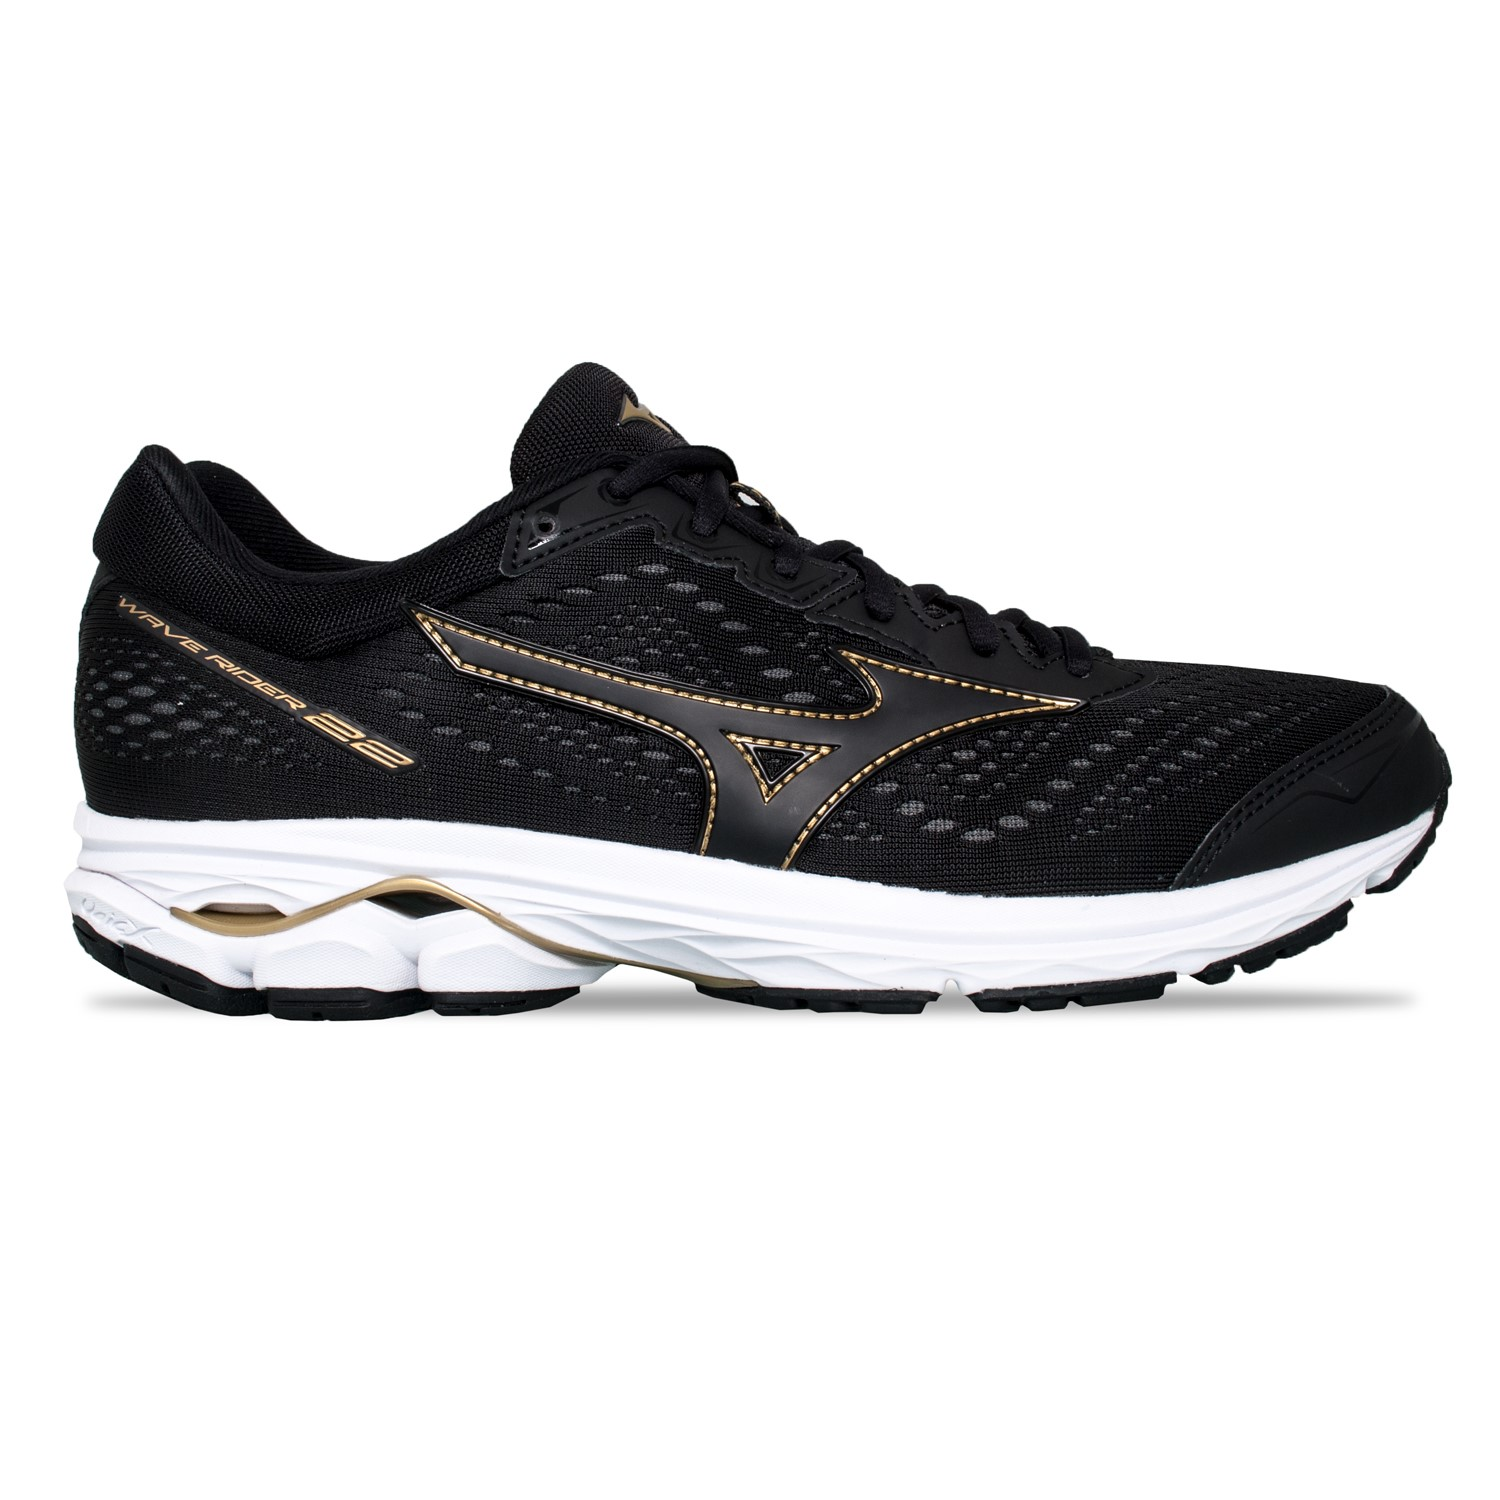 Mizuno Wave Rider 22 - Mens Running Shoes - Black Gold  1d09f78df4